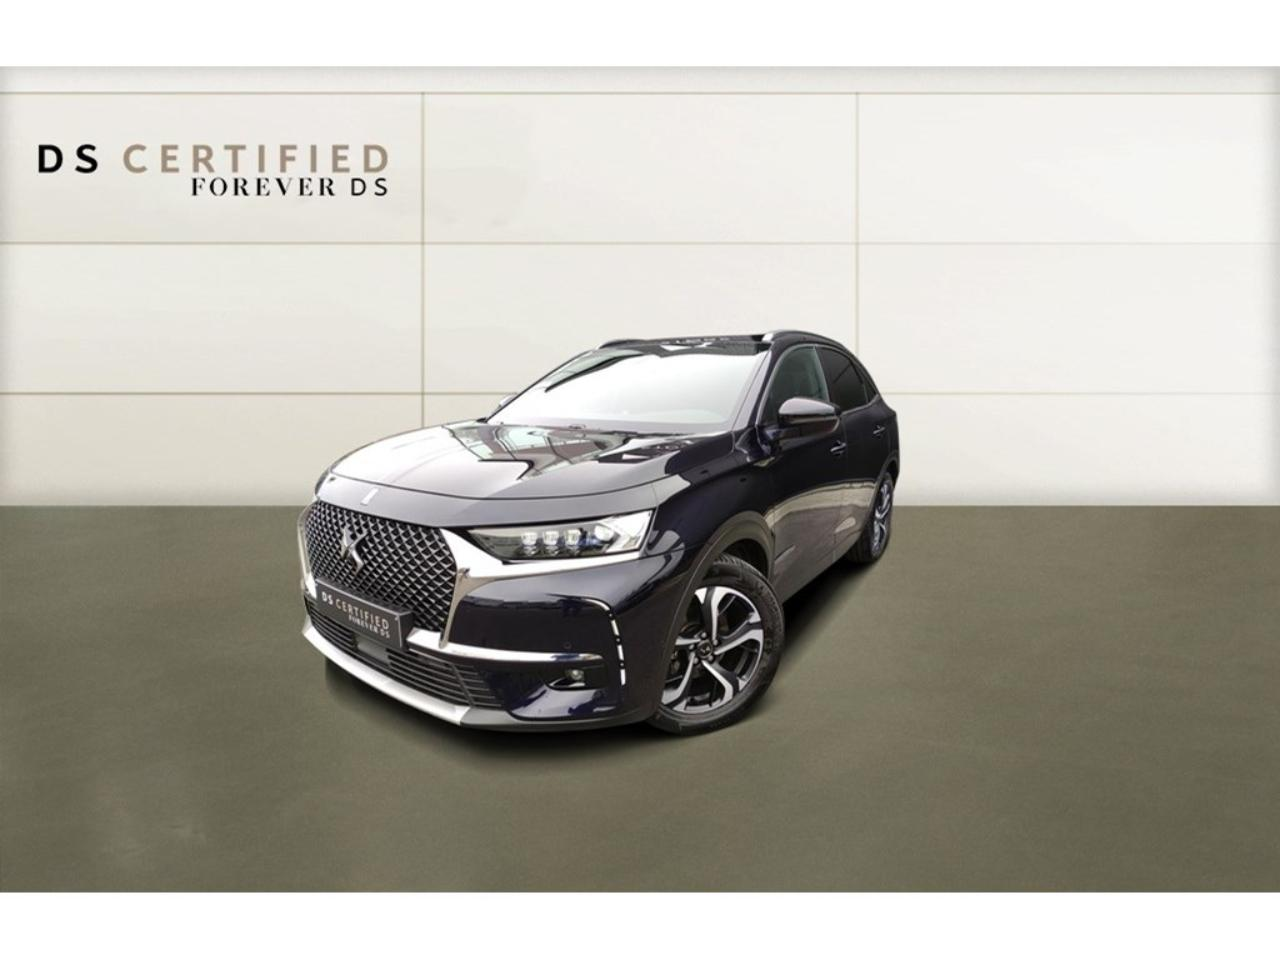 Ds DS 7 Crossback *GPS*A&V-CAMERA*PANO DAK*FOCAL